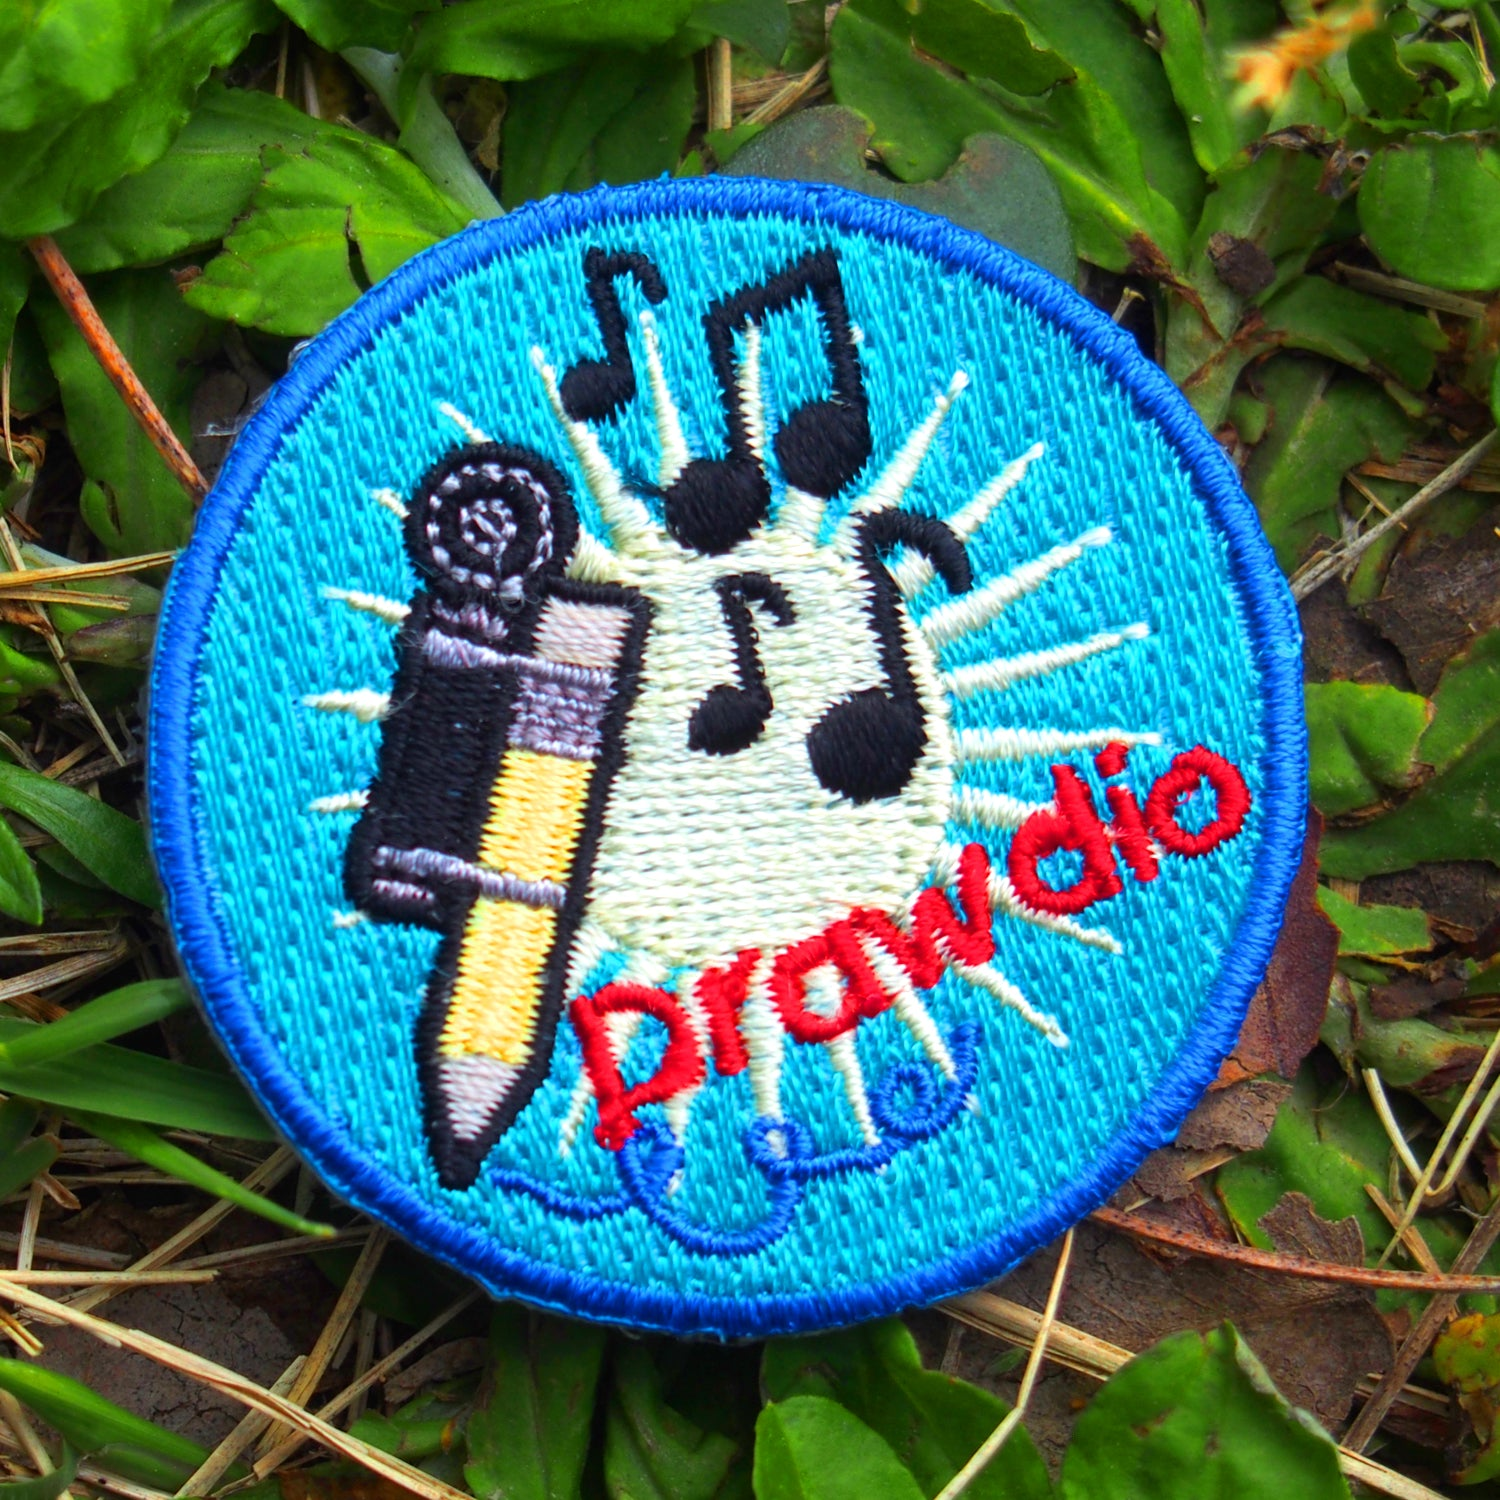 Drawdio! - Skill badge - ワッペン